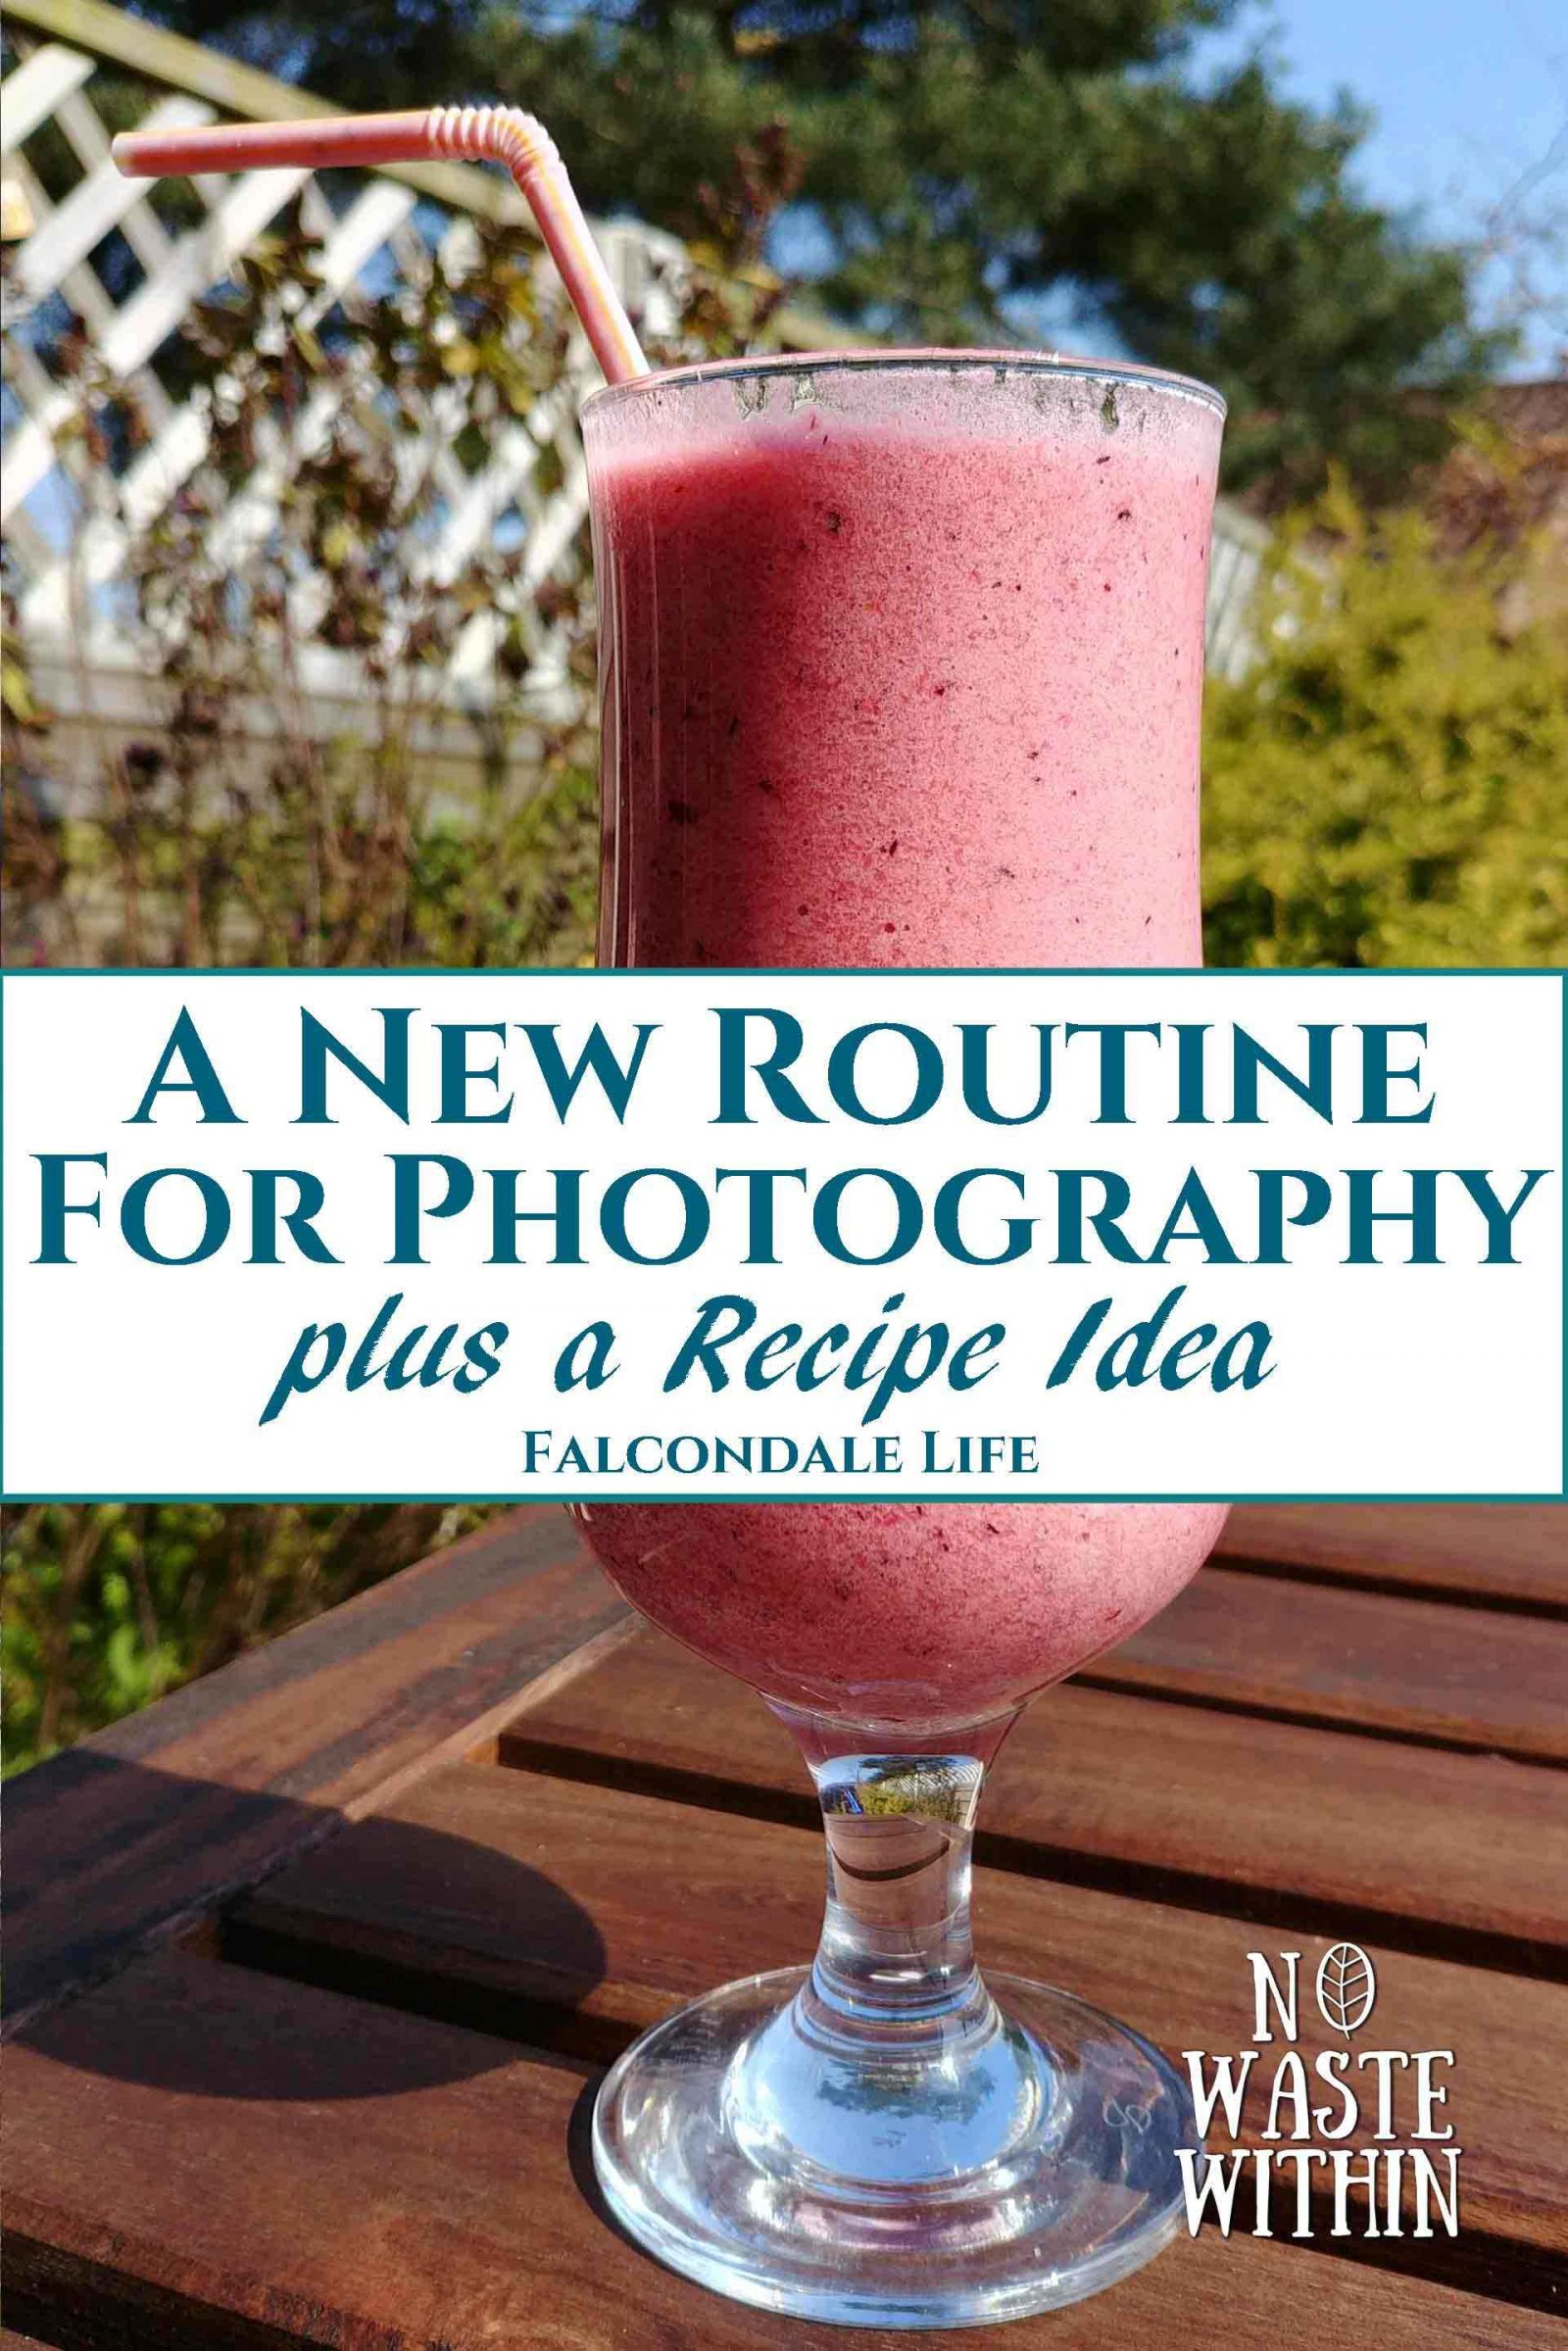 A New Routine for Photography plus a Recipe Idea